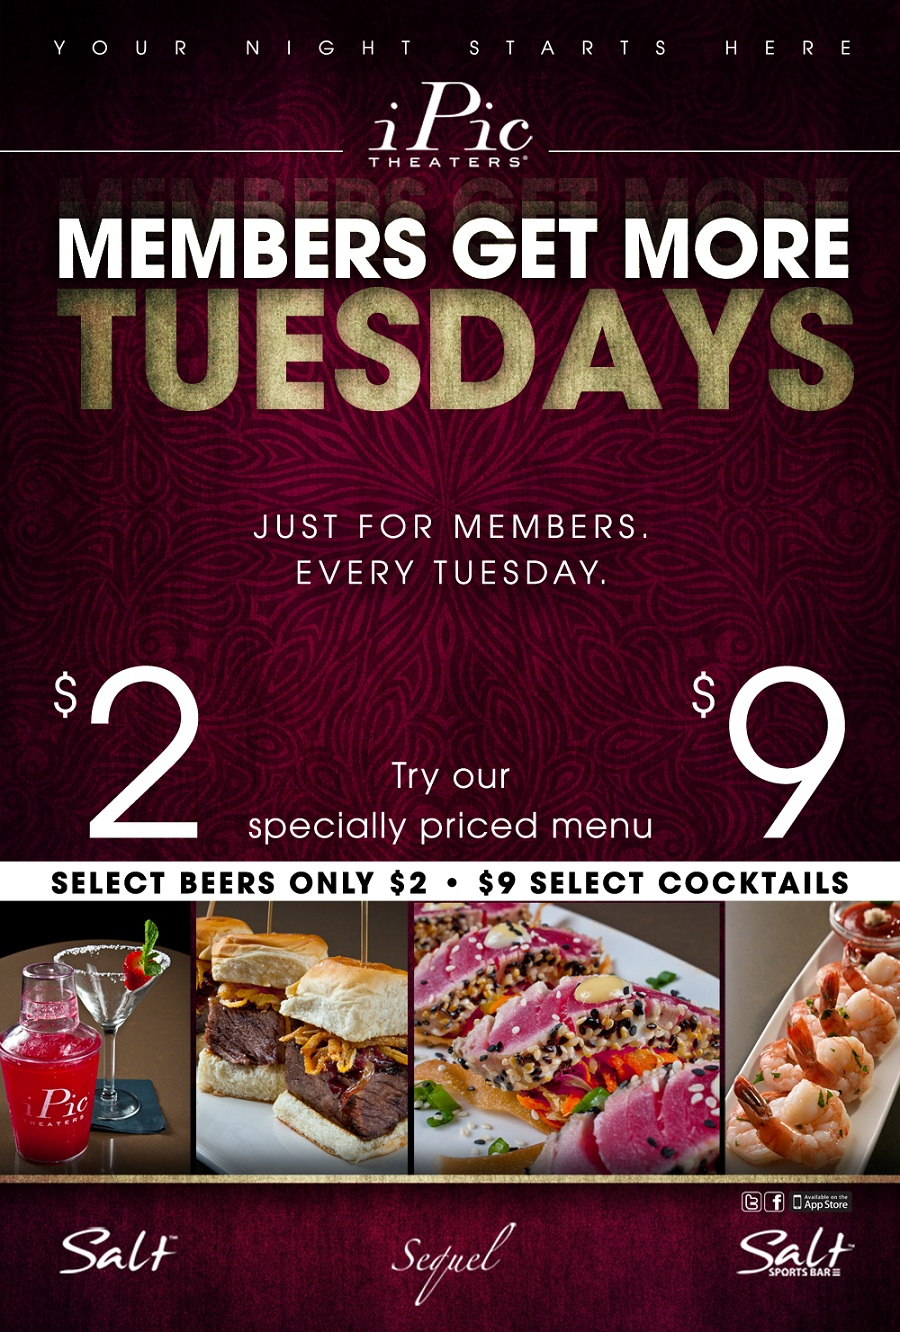 Member Get More Tuesdays